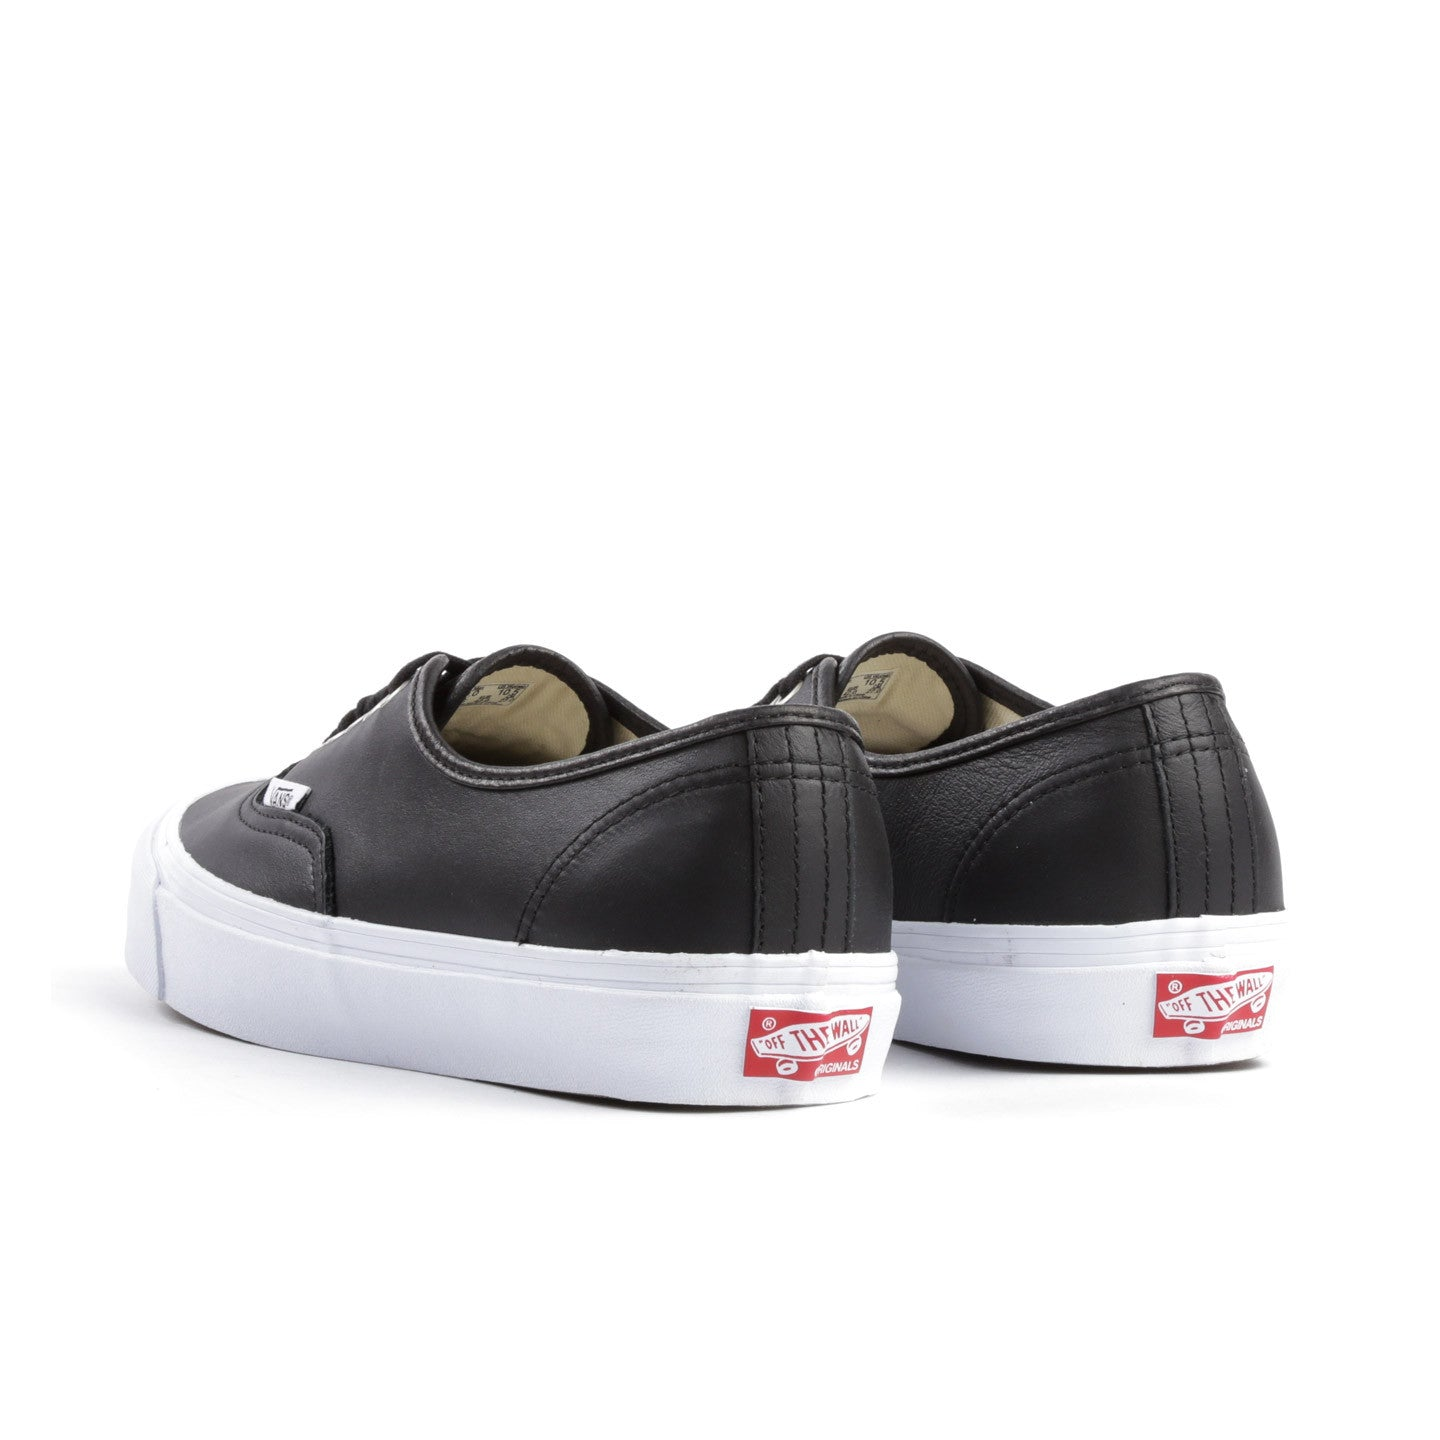 VAULT BY VANS OG AUTHENTIC LX BLACK LEATHER